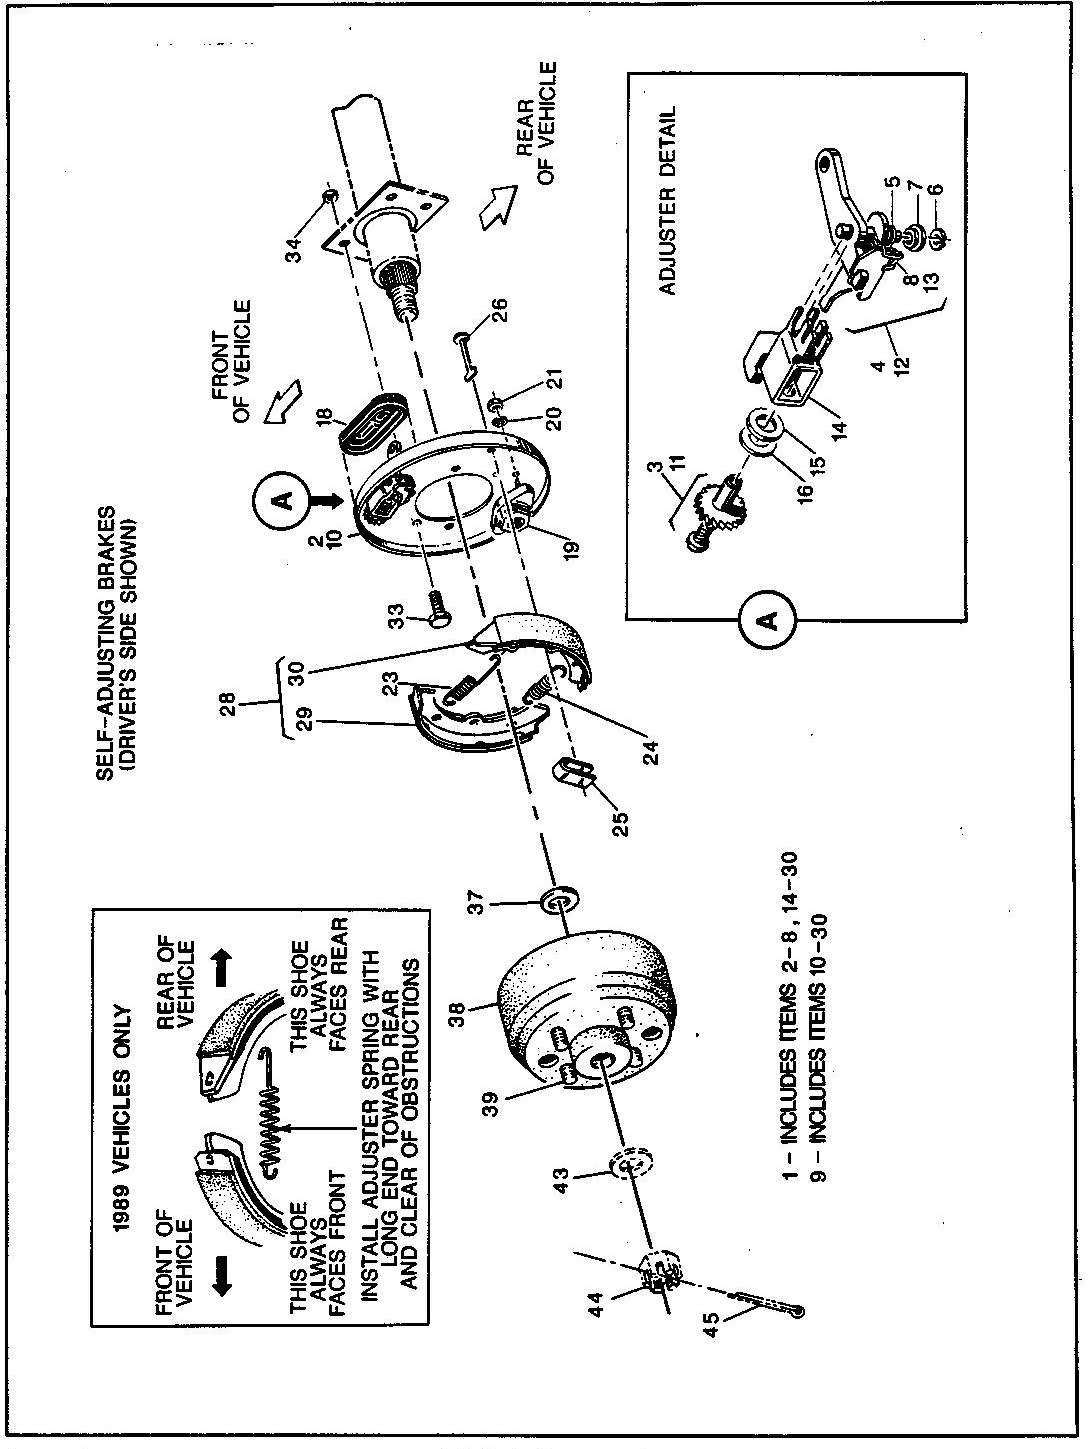 43_1989-1991 Electric and Gas Wheel Brake